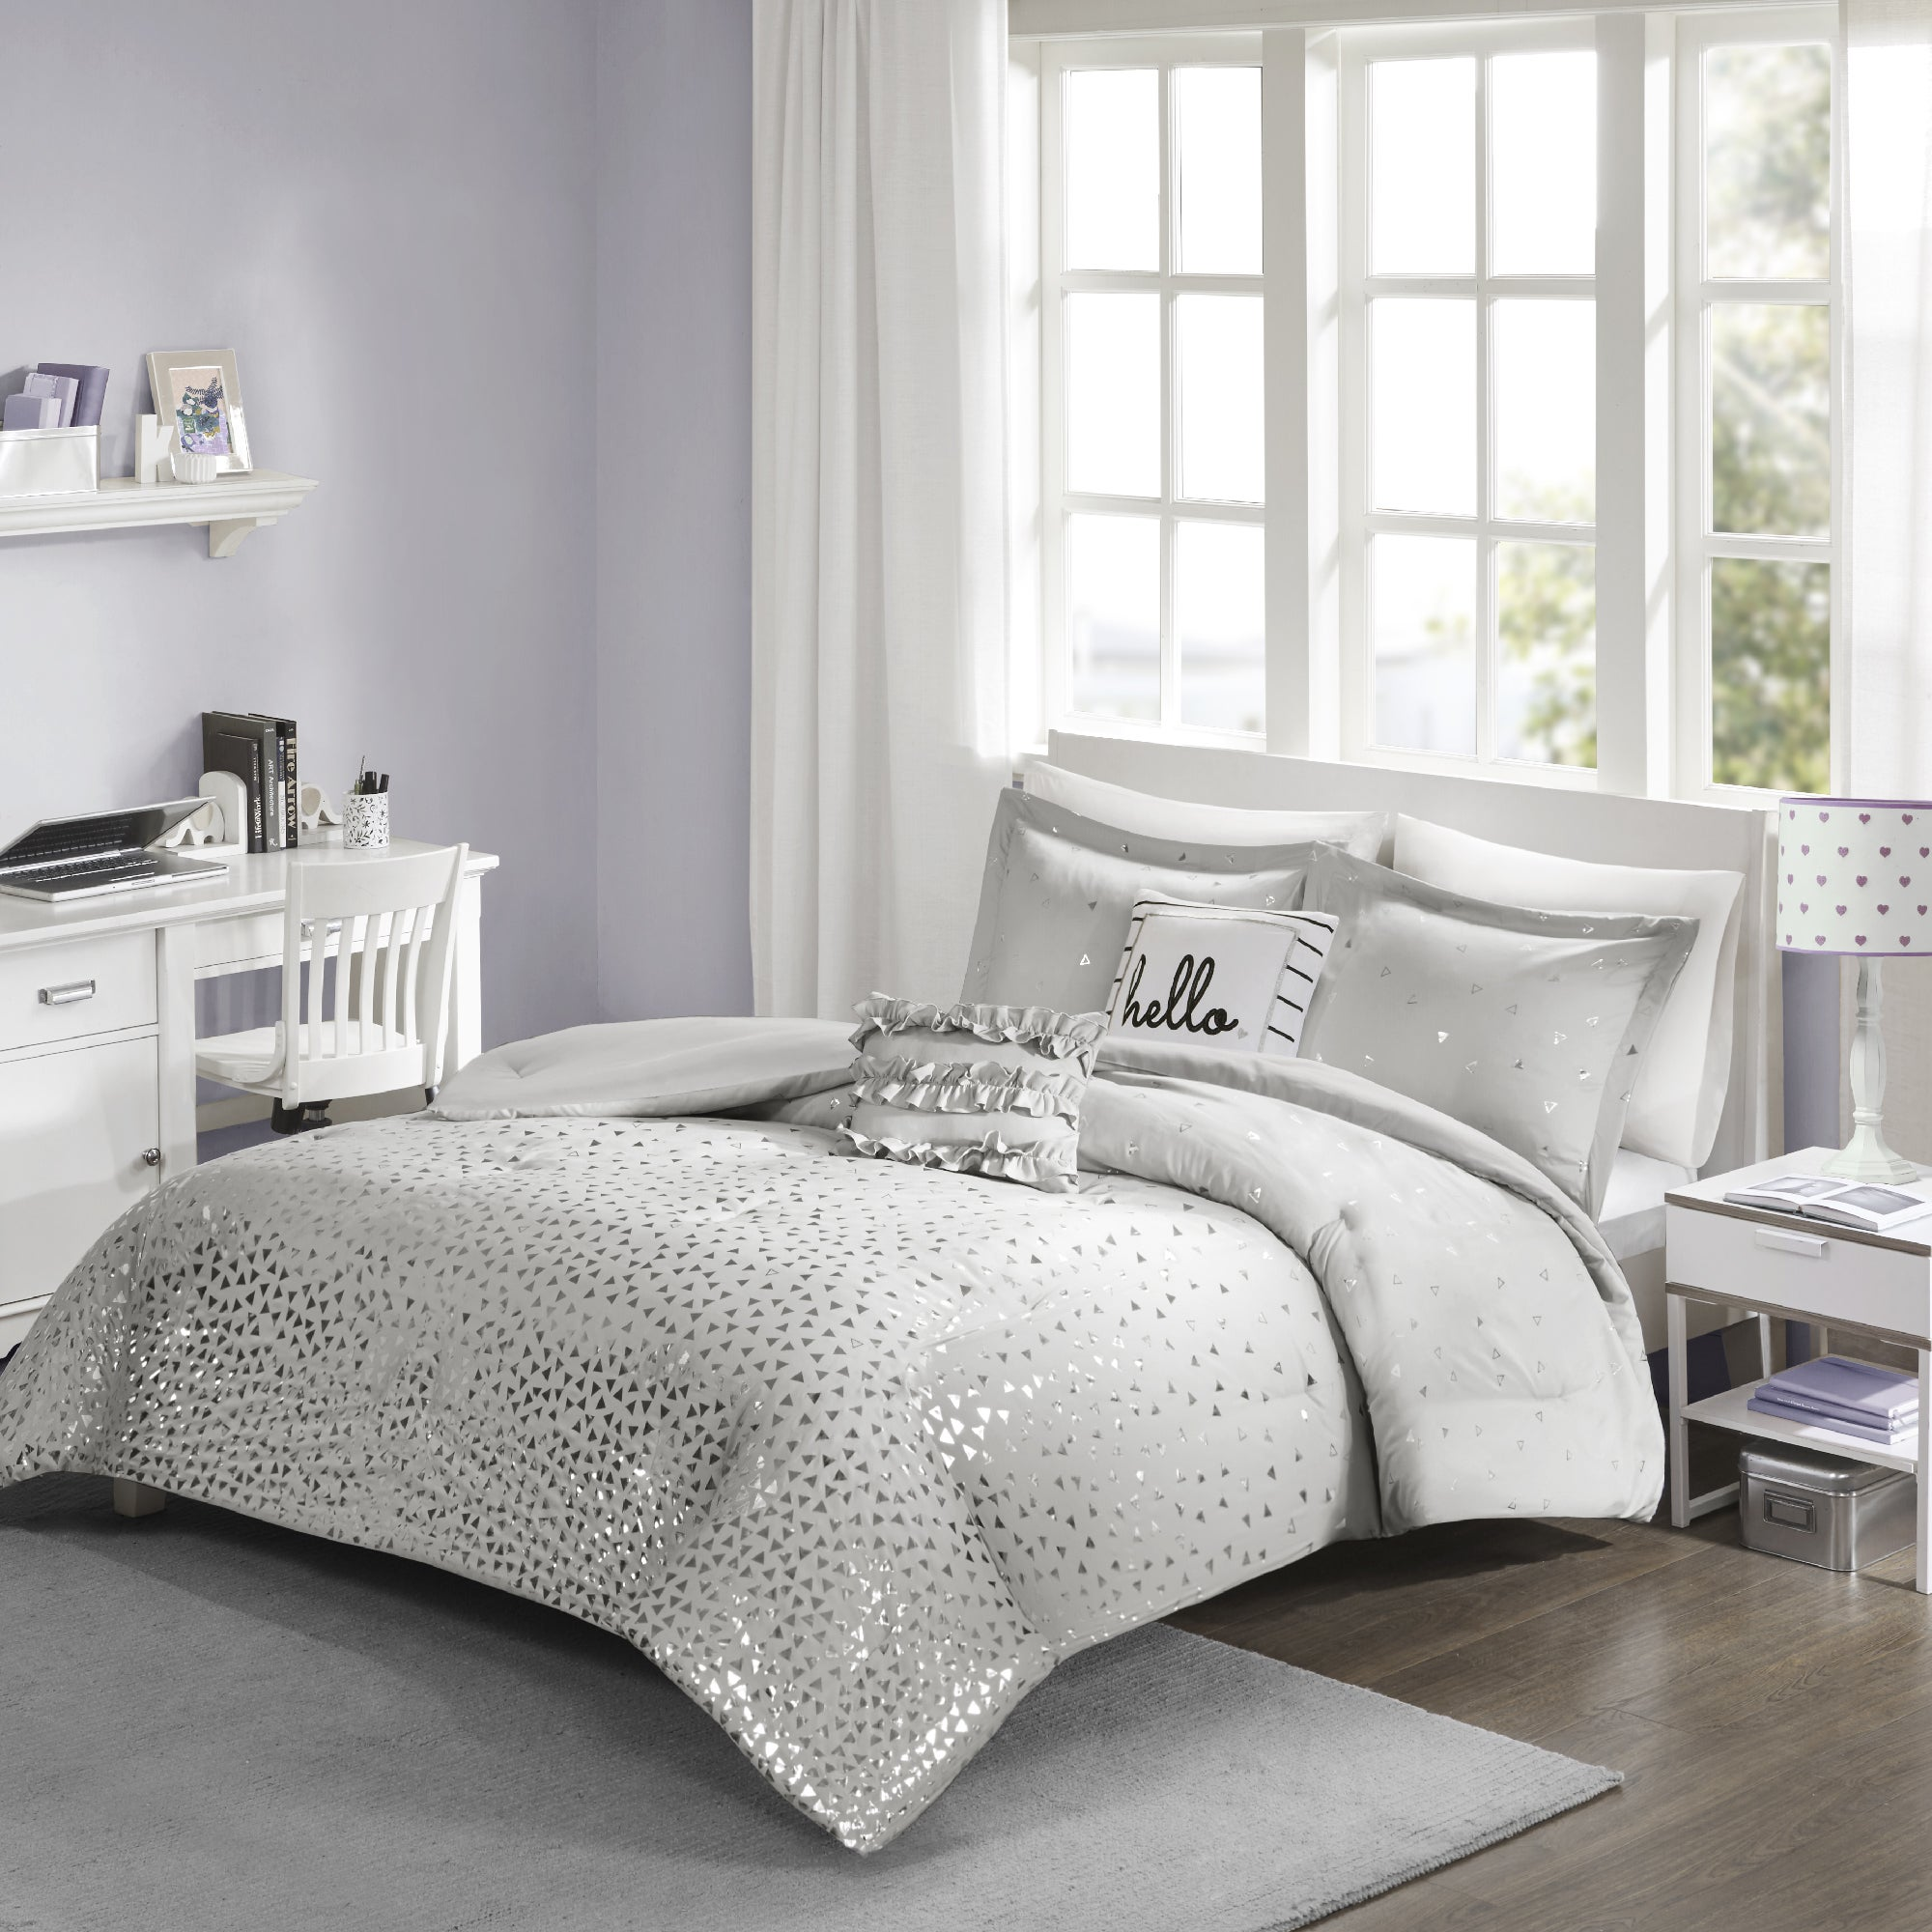 bedroom embroidered ceramic silver bedside with piece white set and comforter simple sheer lamp curtain small table